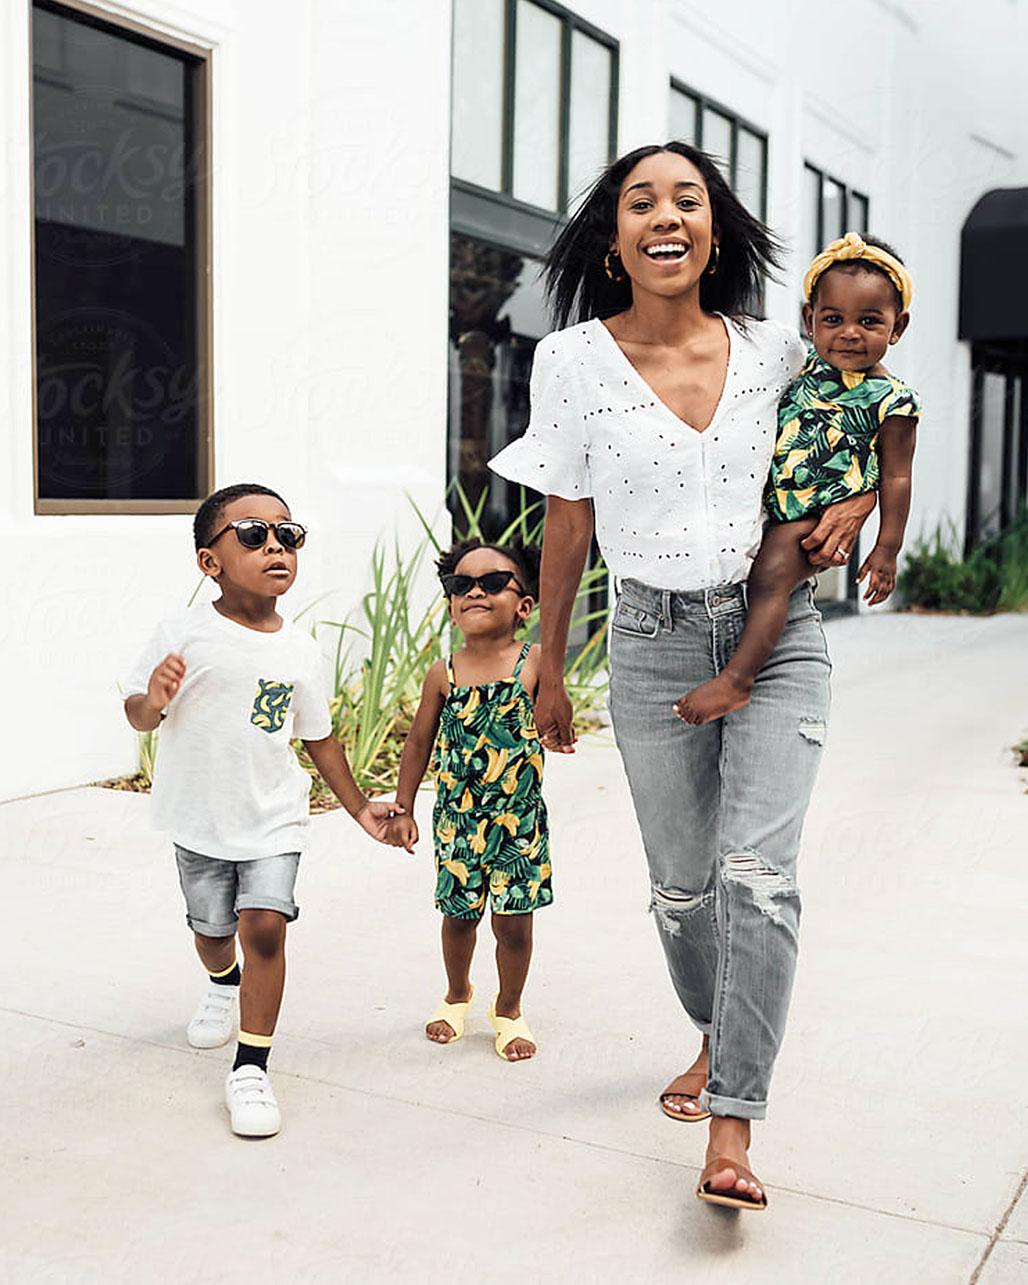 mom walking with three young children